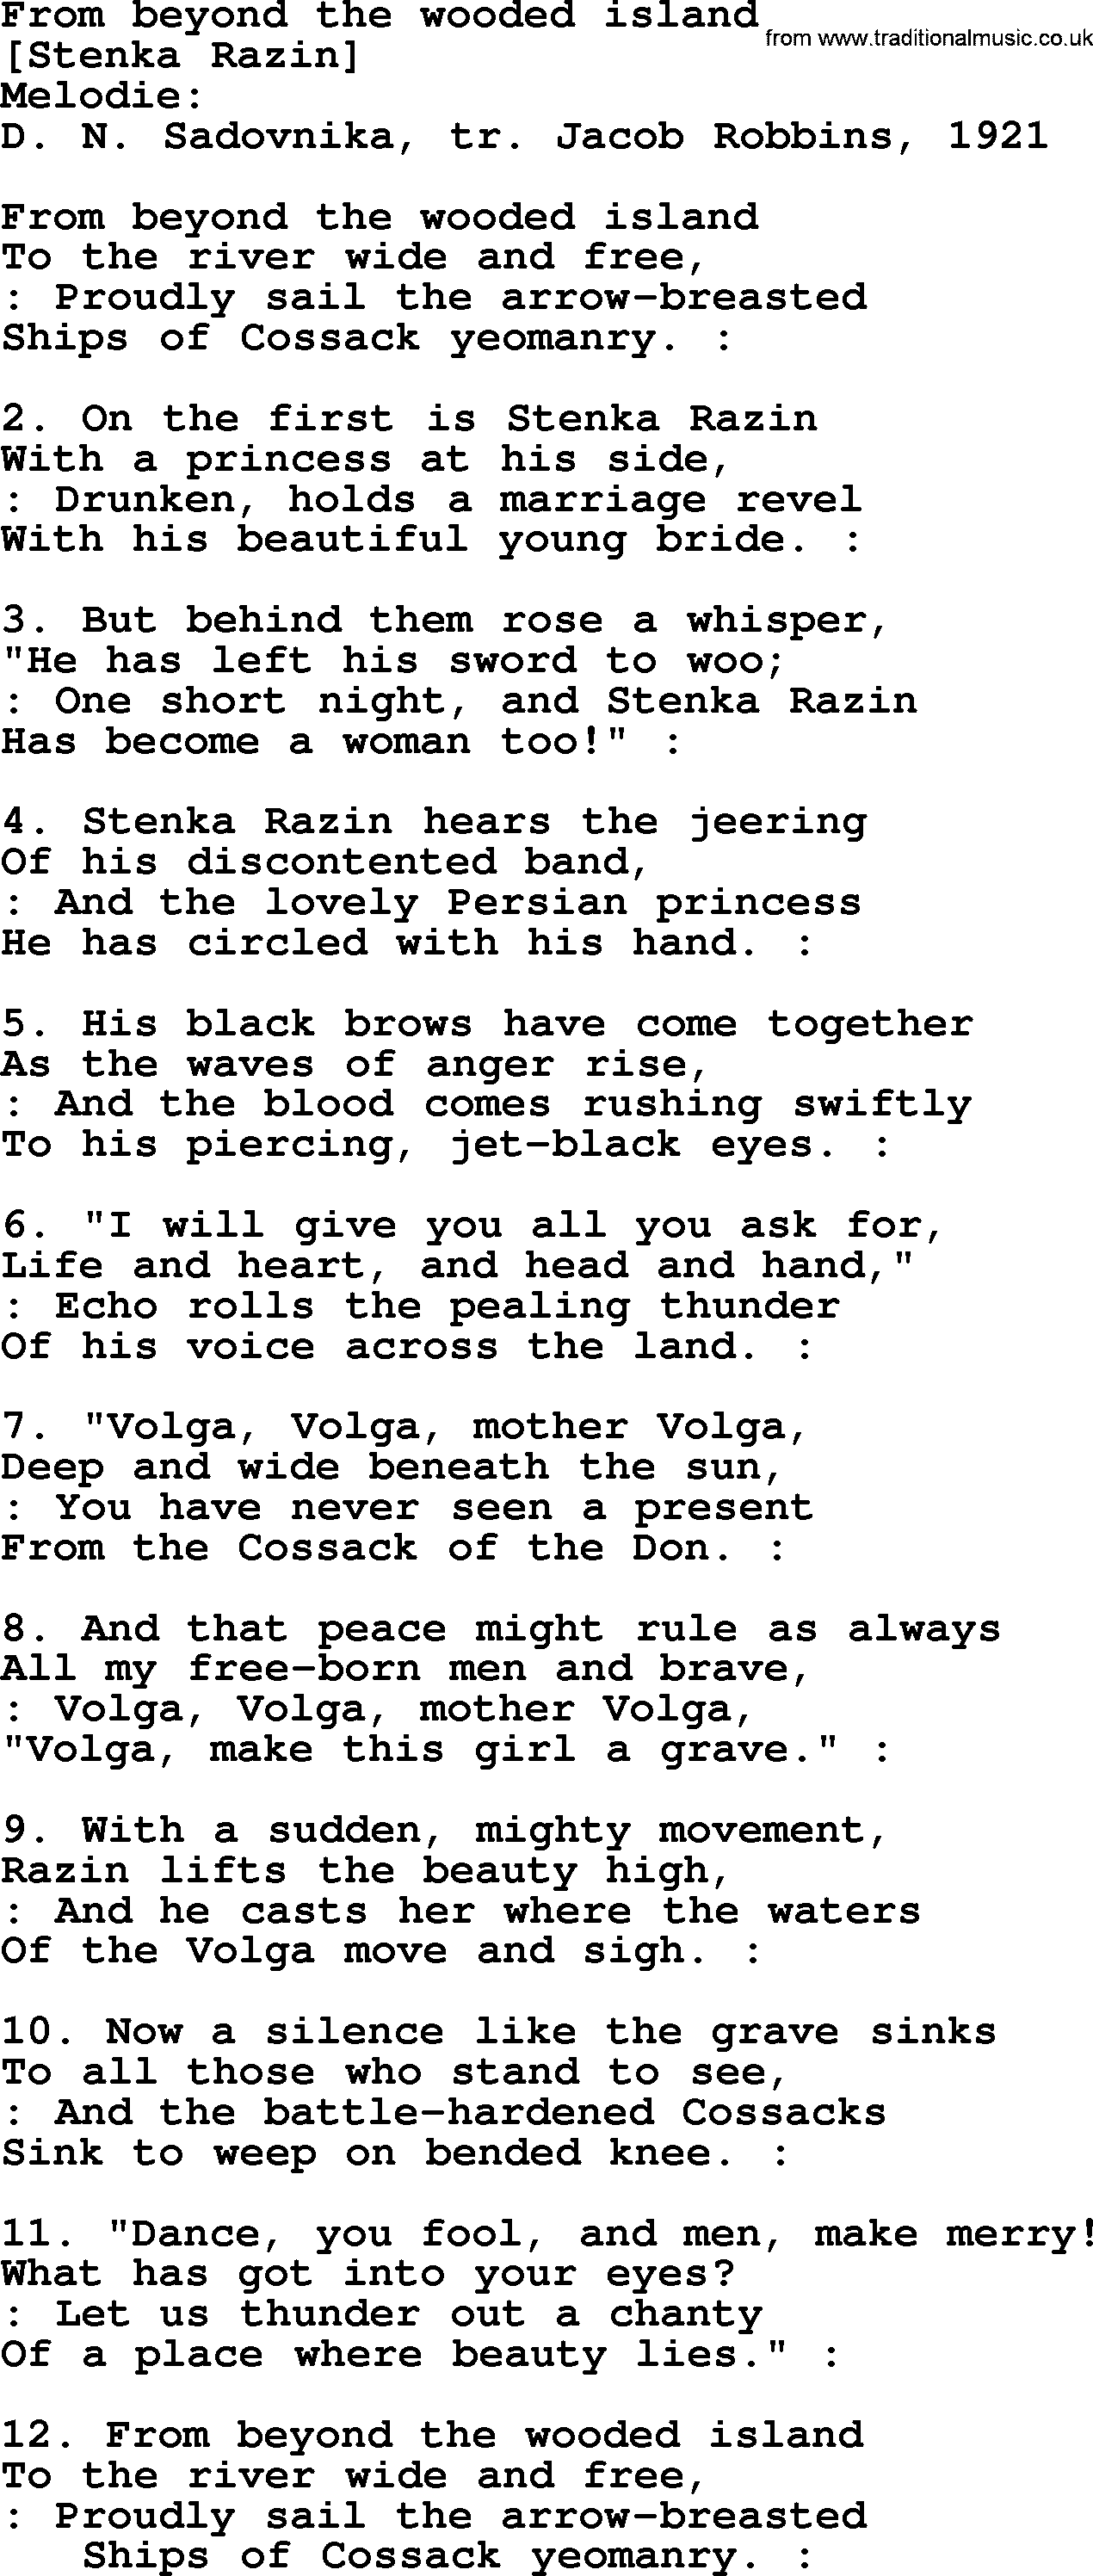 Old American Song - Lyrics for: From Beyond The Wooded